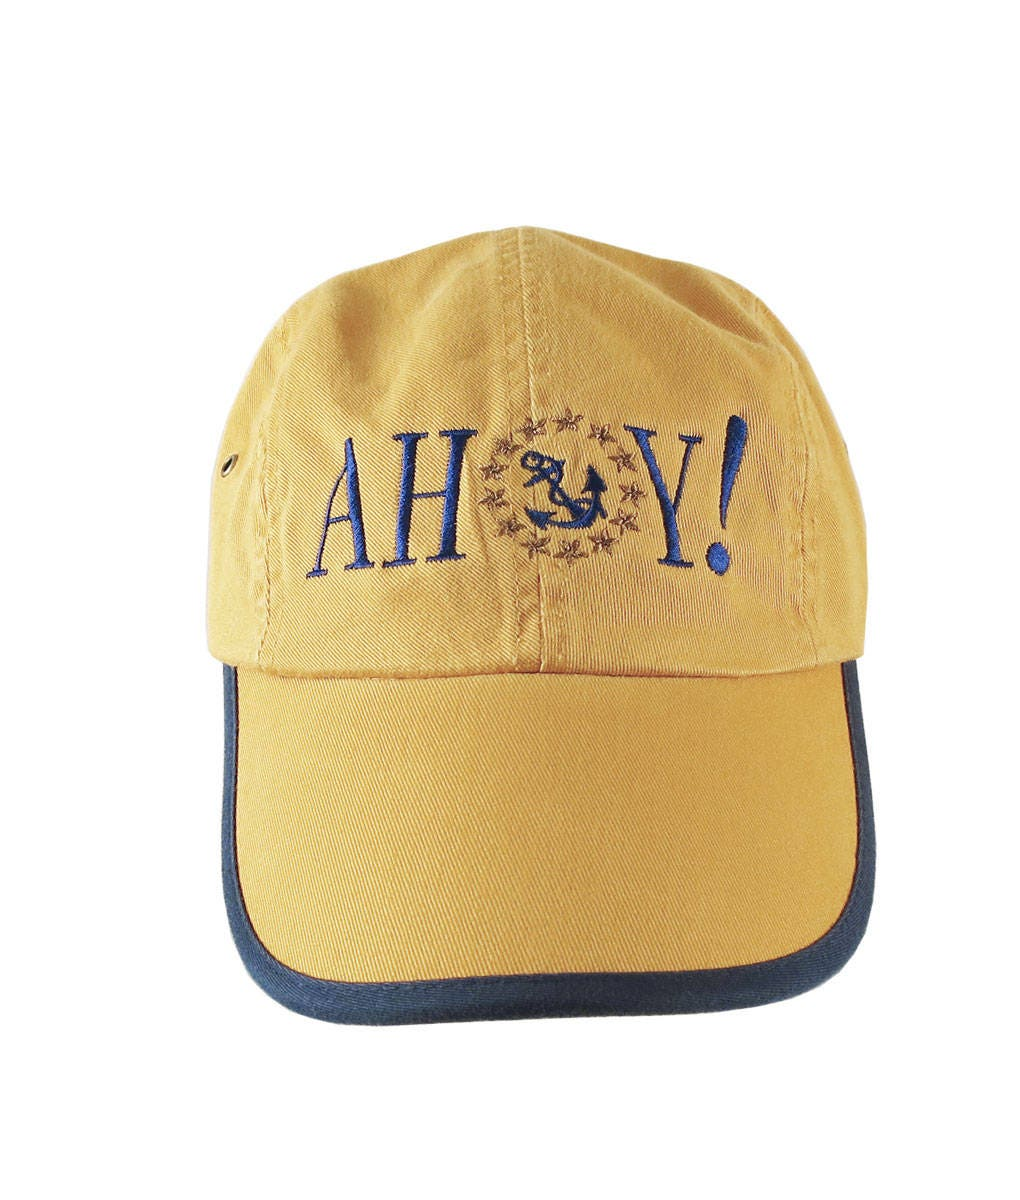 3c9784956f0 American Yacht Anchor Greeting Embroidery on Polo Style 5 Panel Adjustable  Mango and Navy Unstructured Cap for the Boating Enthusiast